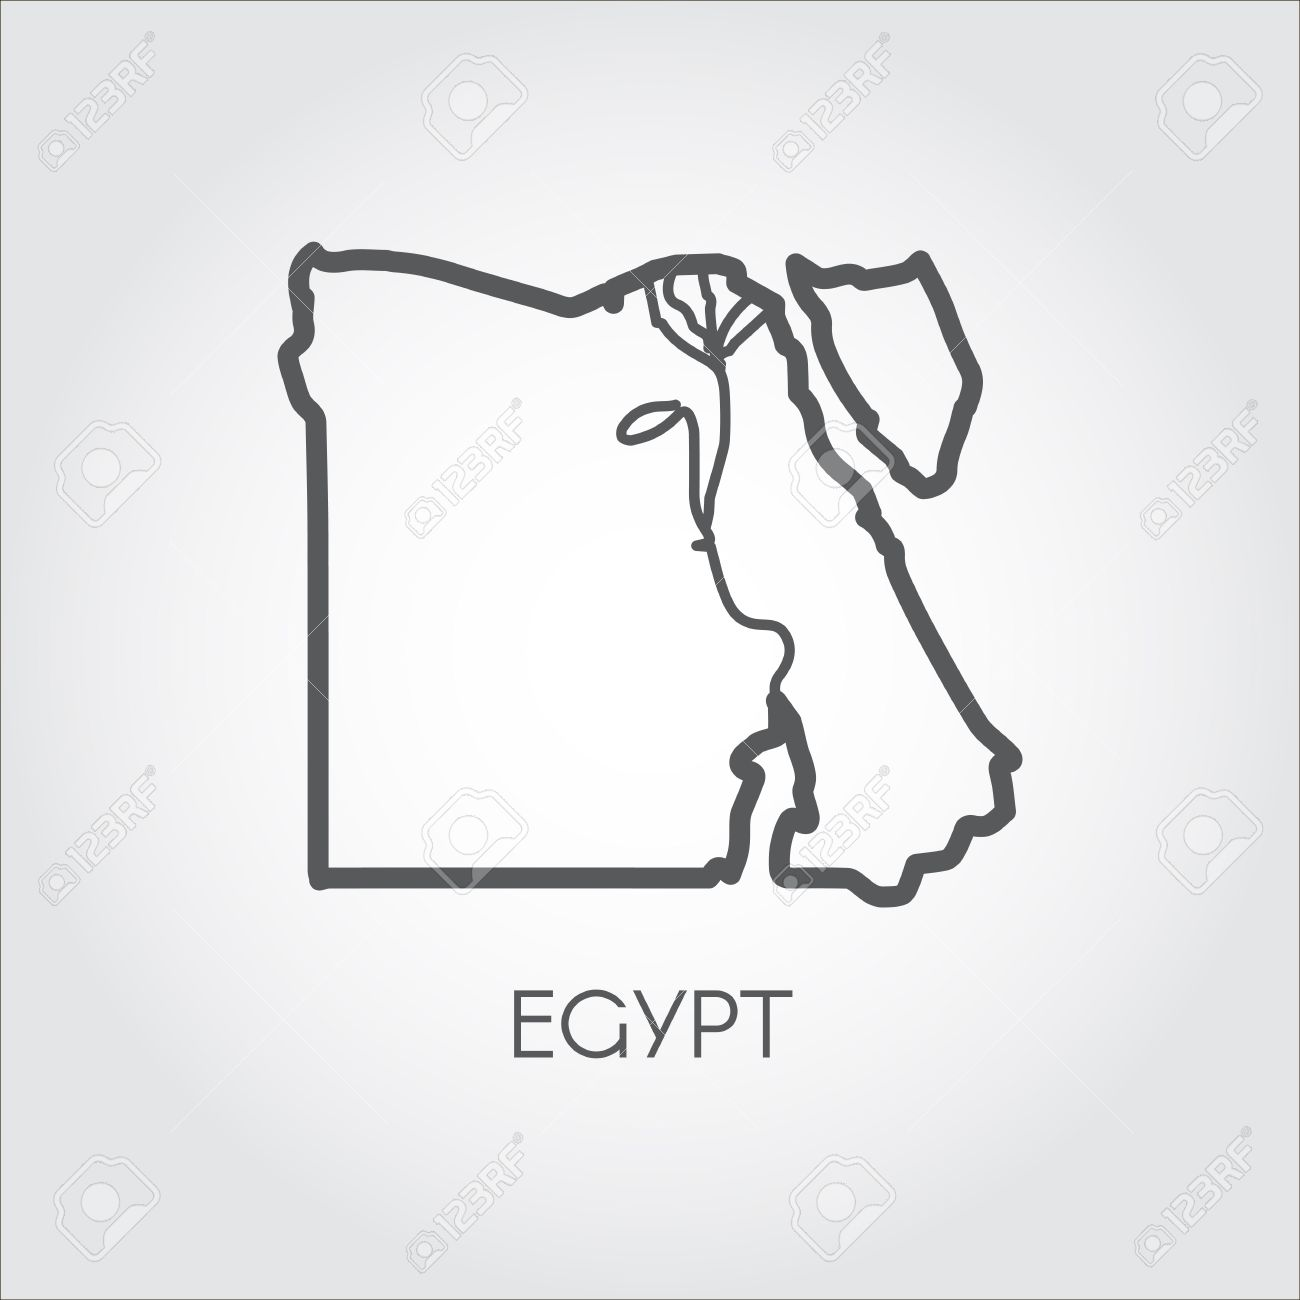 1300x1300 Contour Map Of Egypt With Shape Of Some Rivers. Simplicity Icon